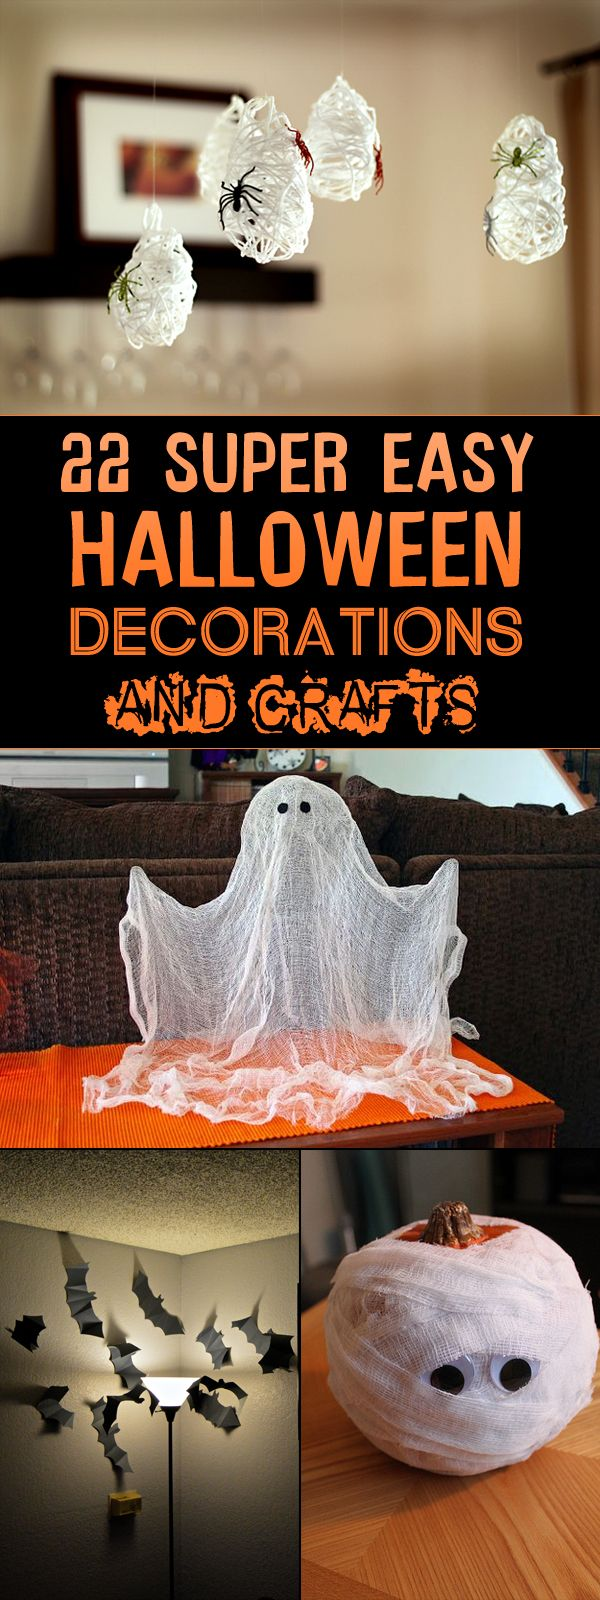 Office halloween decorations ideas - 22 Super Easy Halloween Decorations And Crafts You Can Make Yourself